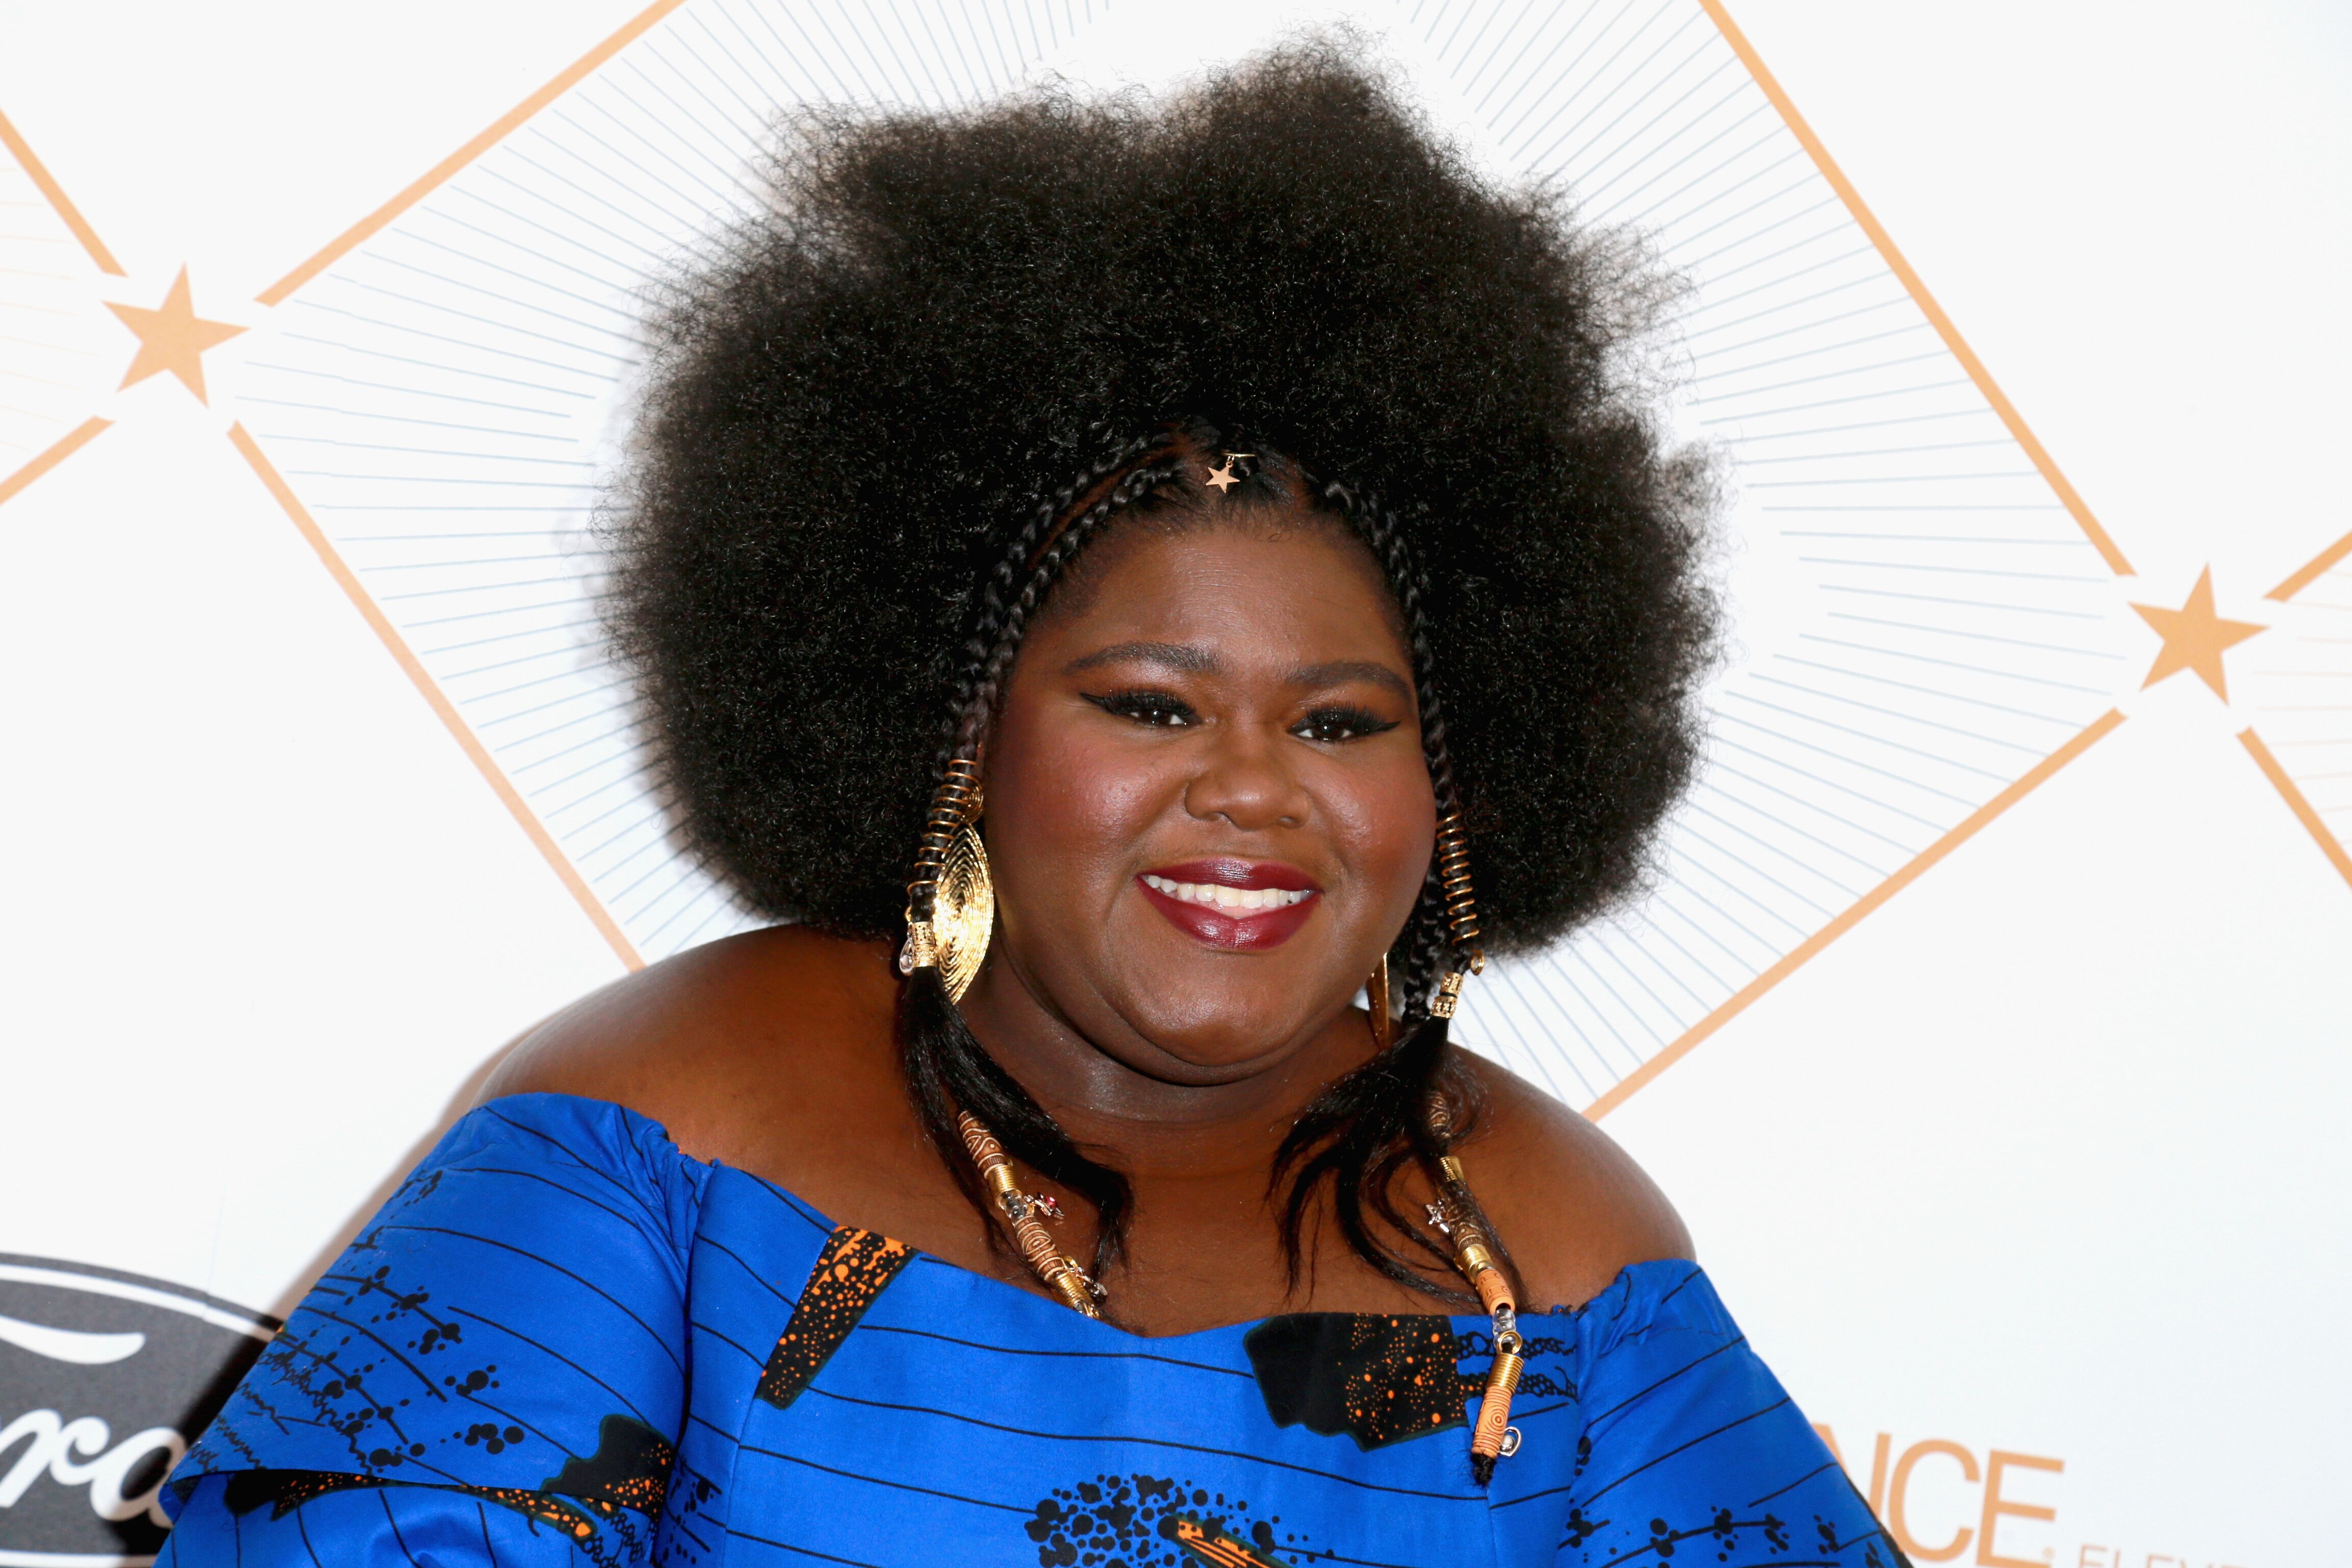 Gabourey Sidibe attends the 2018 Essence Black Women In Hollywood Oscars Luncheon at Regent Beverly Wilshire Hotel on March 1, 2018 | Photo: Getty Images